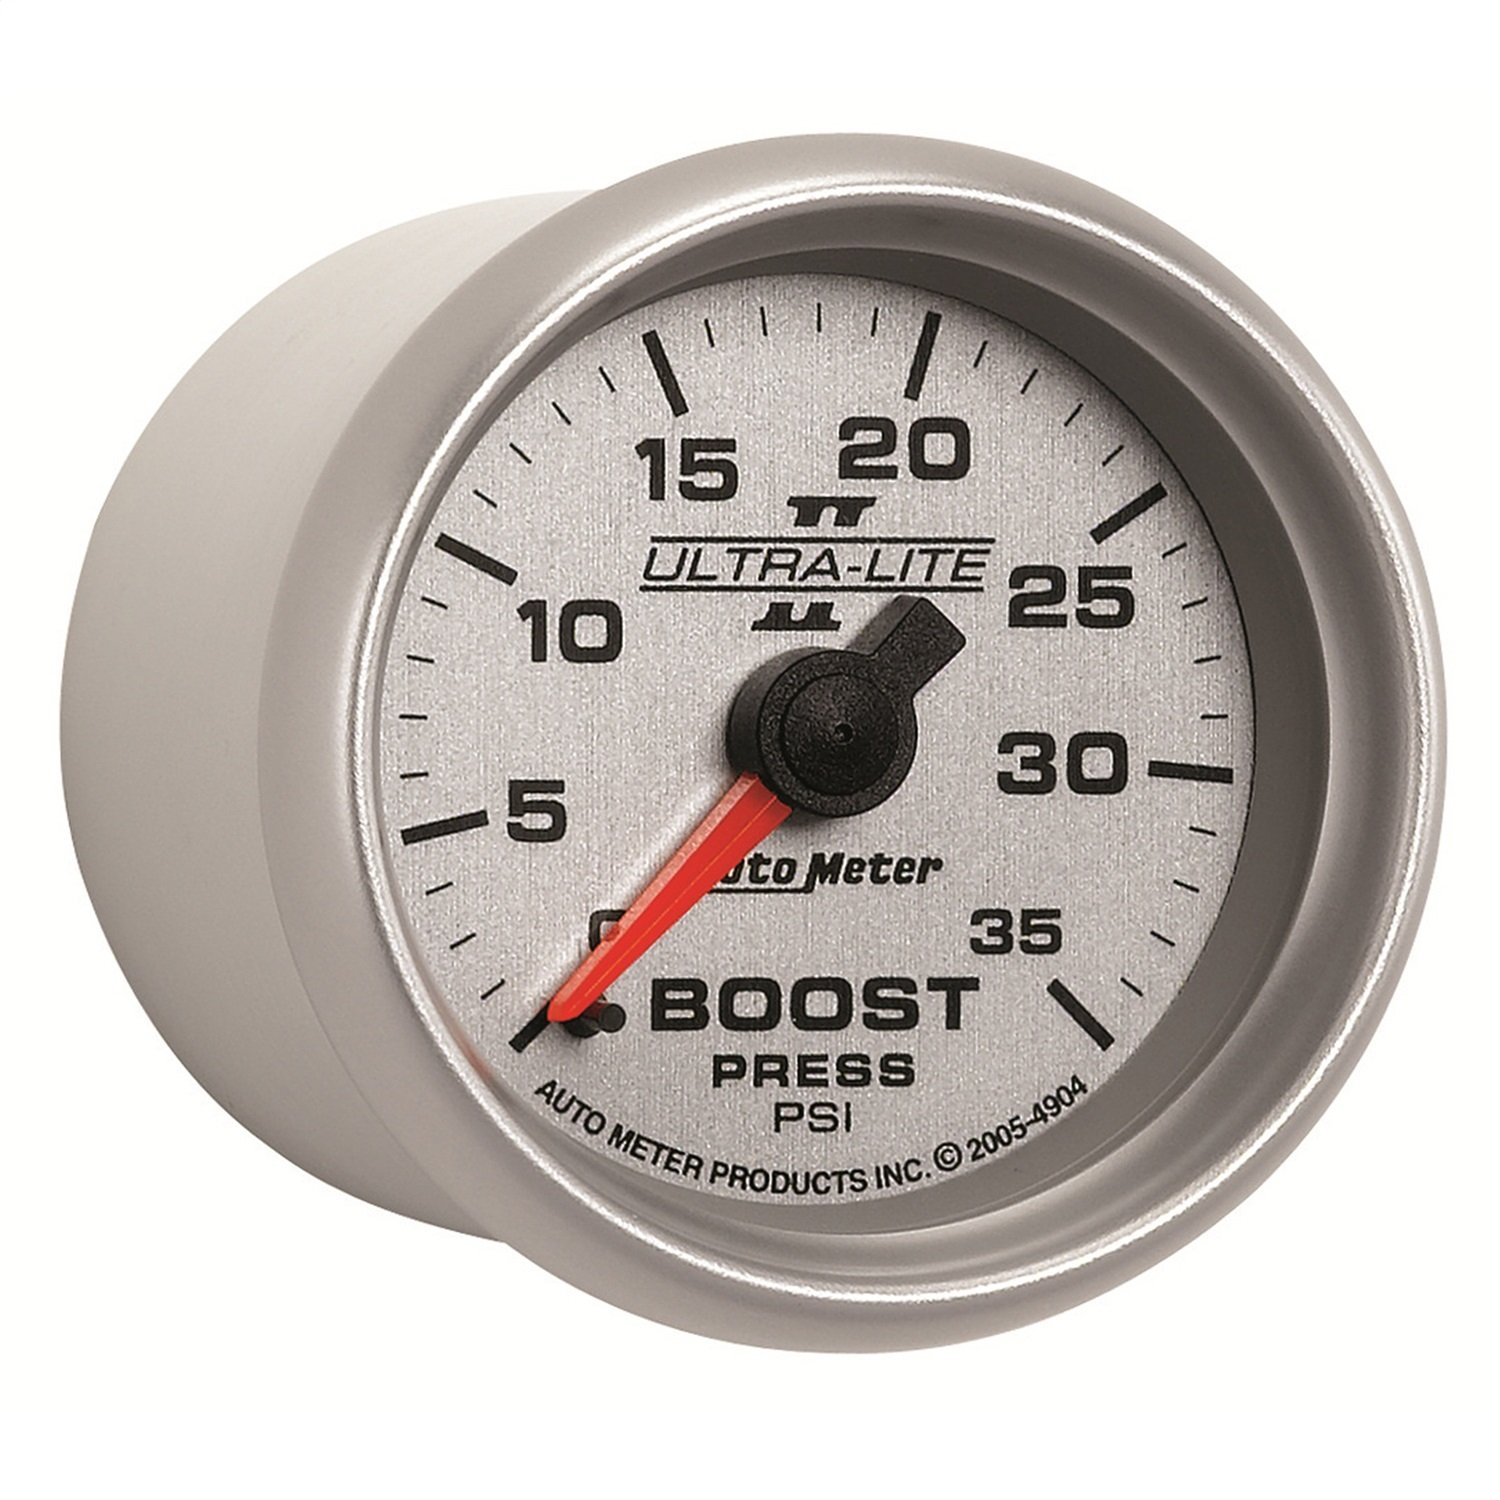 Auto Meter 4904 Ultra-Lite II 2-1/16' 0-35 PSI Mechanical Boost Gauge